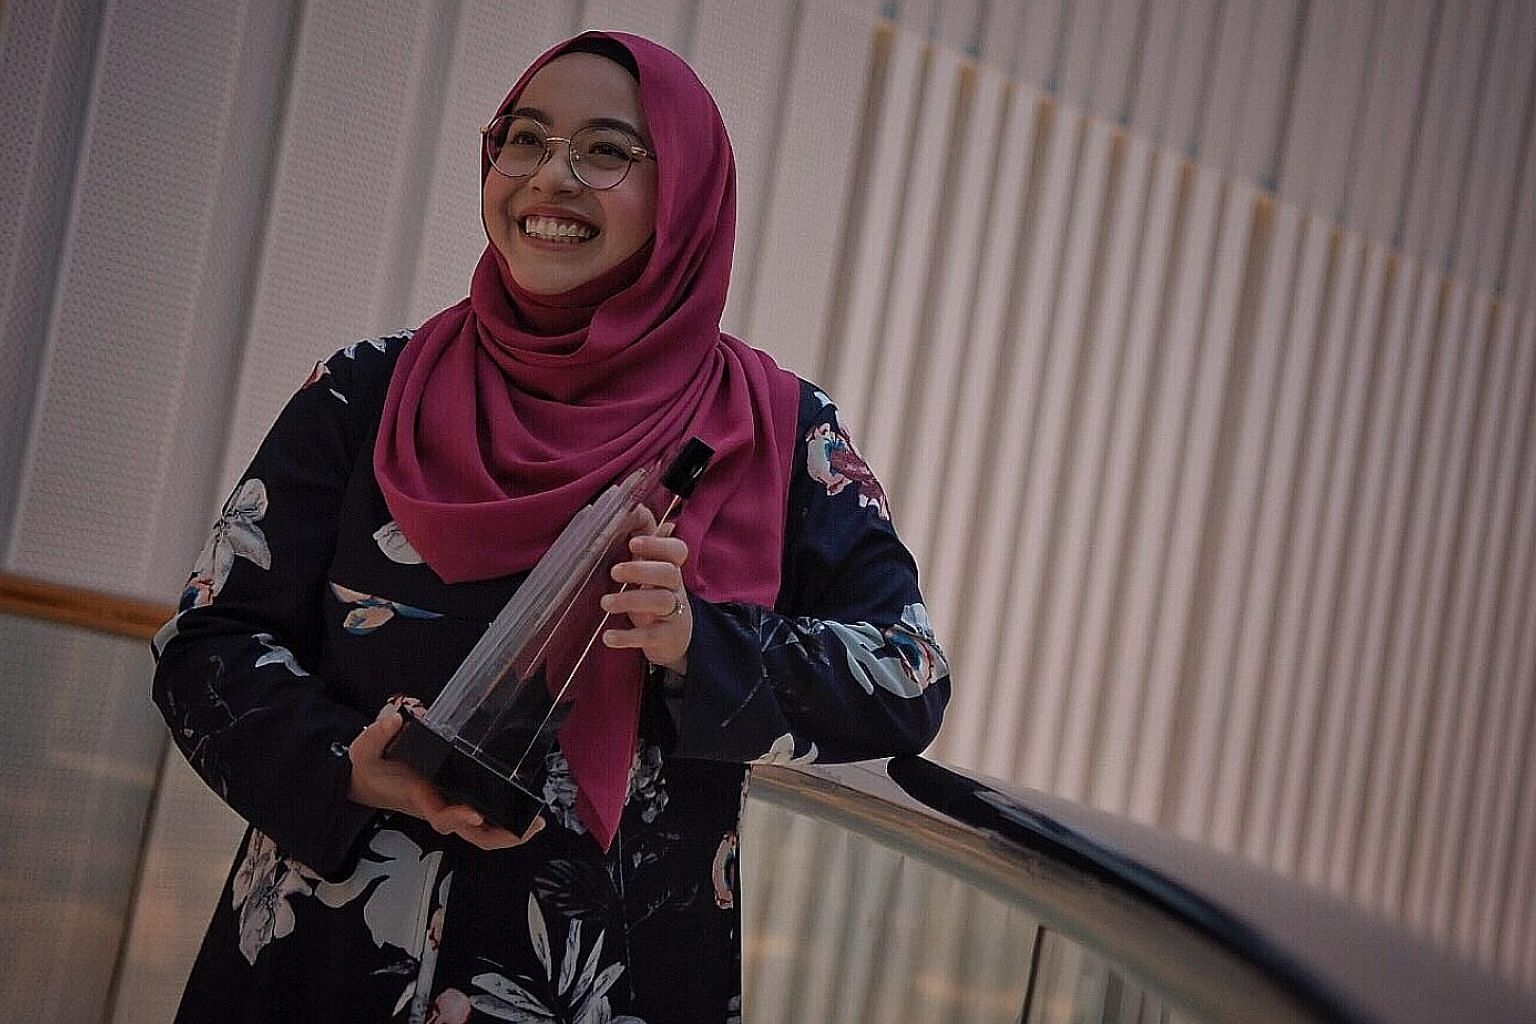 SMRT fleets and assets supervisor Ulfah Khairiah Aman yesterday received the National Service Advocate Award, the highest accolade for those who have gone the extra mile to support Singapore's defence.